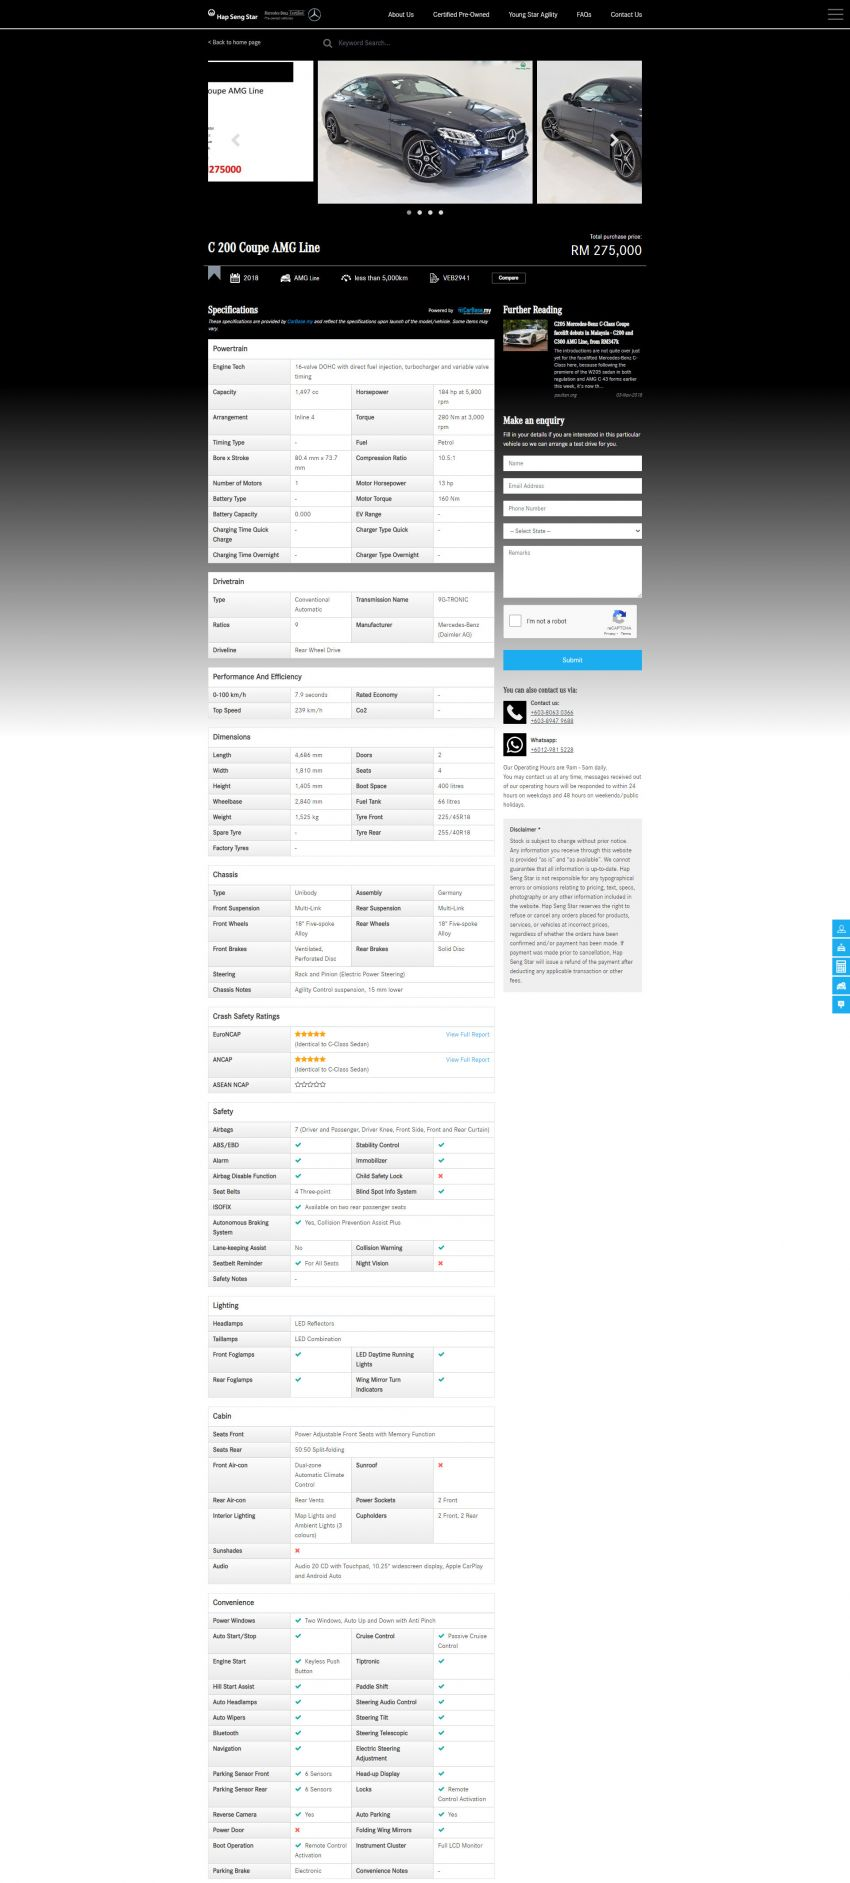 Hap Seng Star enhances Mercedes-Benz Certified online site with new features – more filters, watchlist Image #1151463